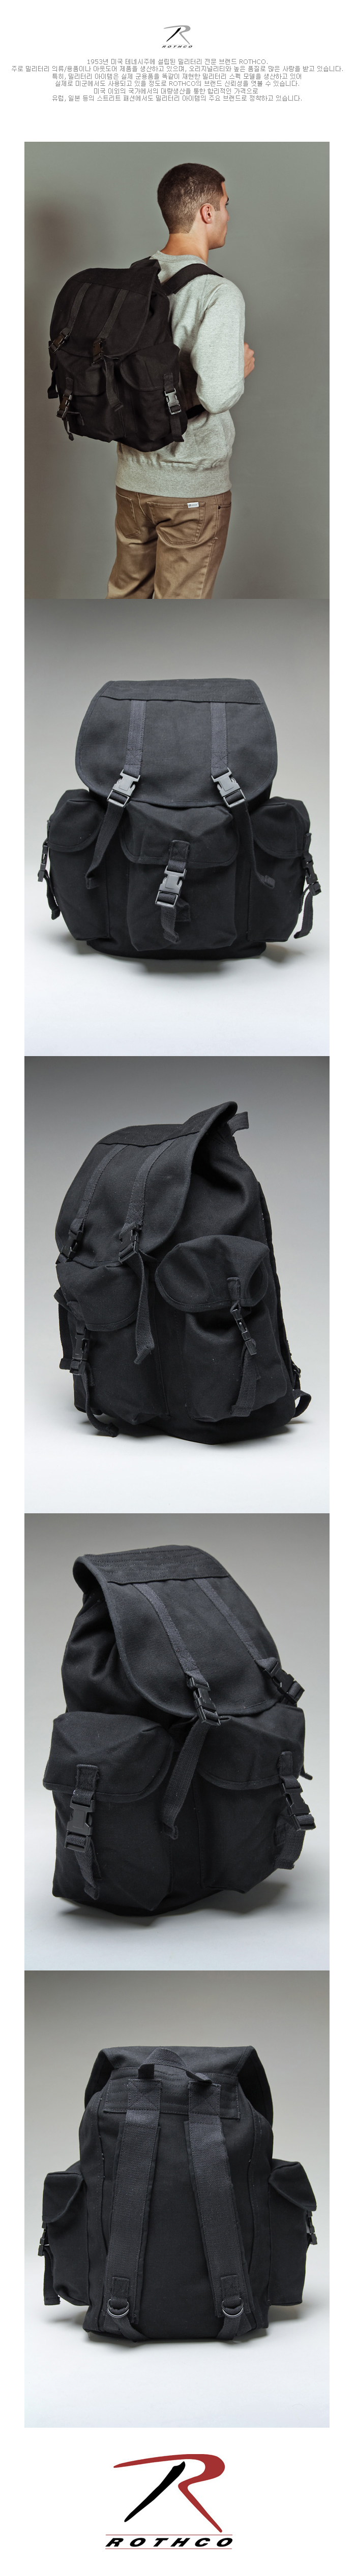 CANVAS OUTFITTER BACKPACK BLACK